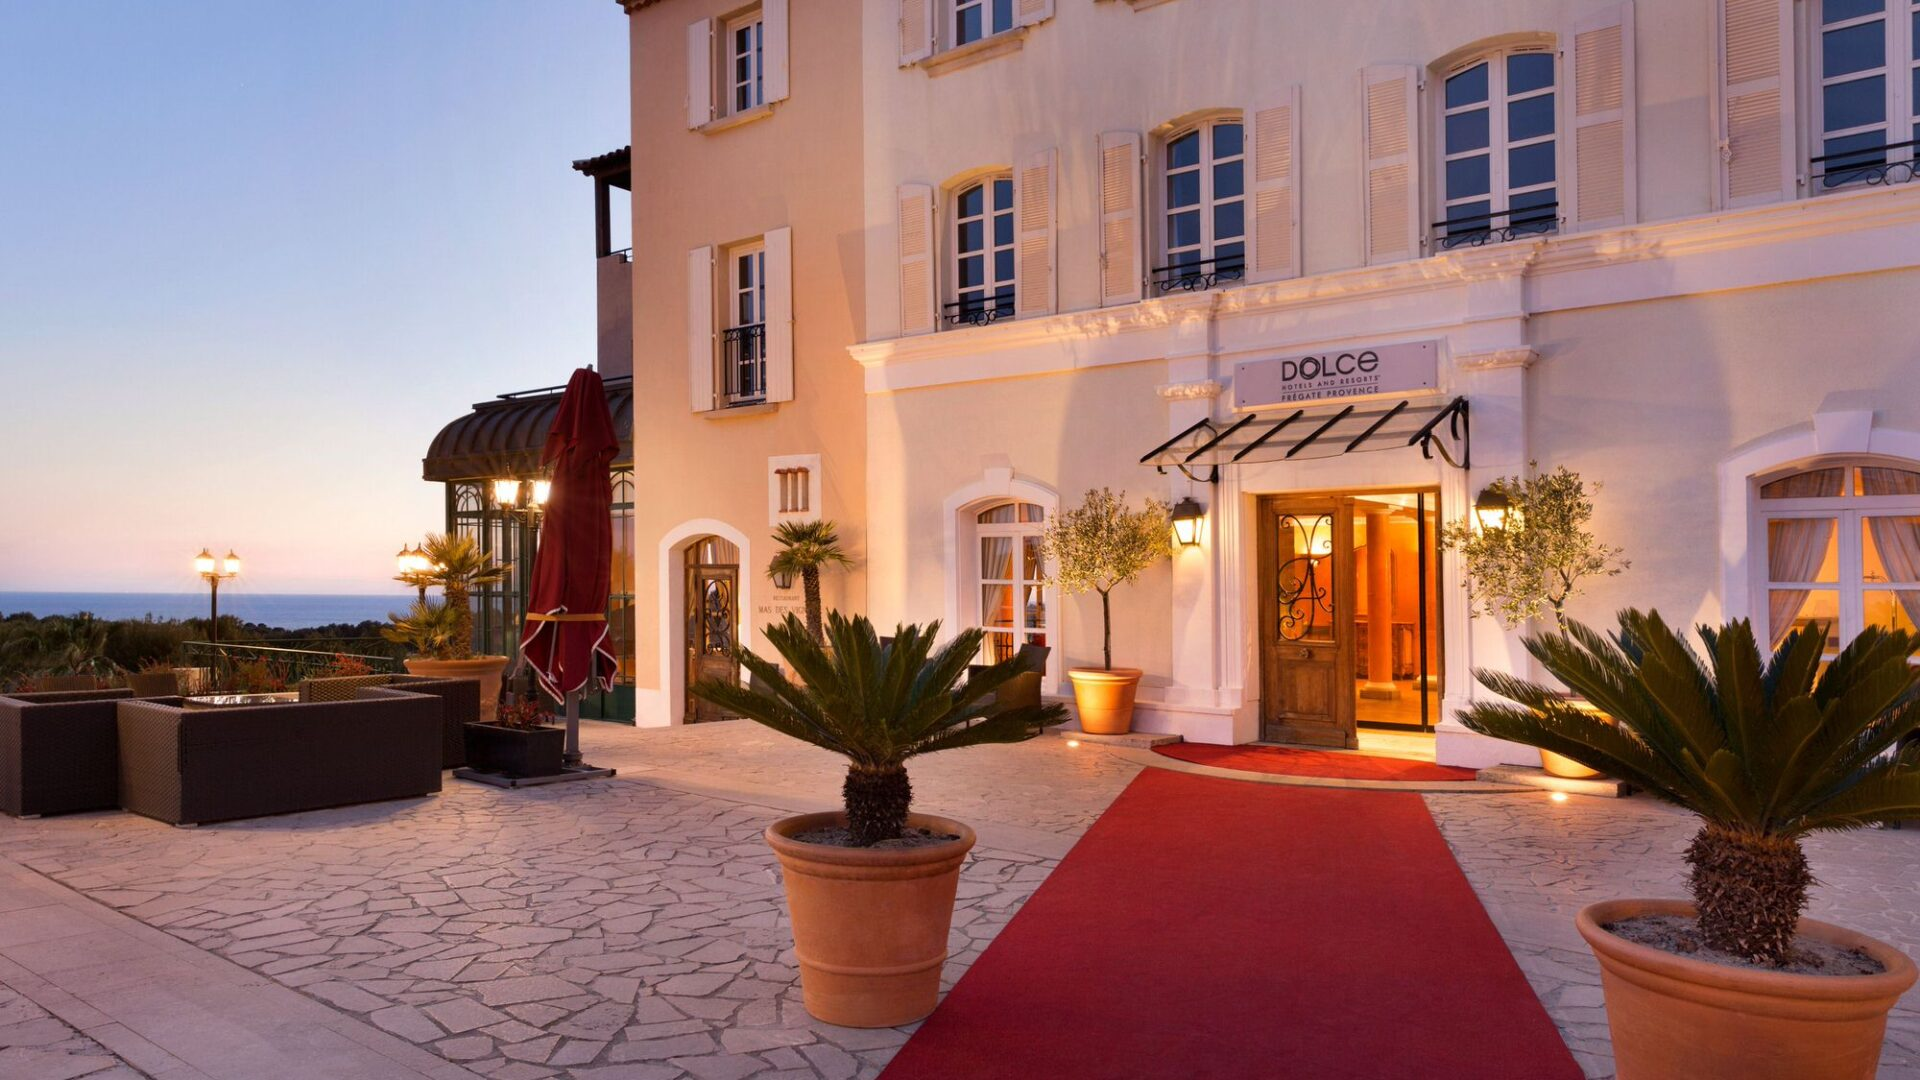 Dolce Fregate Provence - Entrance of the Hotel - Plazza - 1129272 (1)